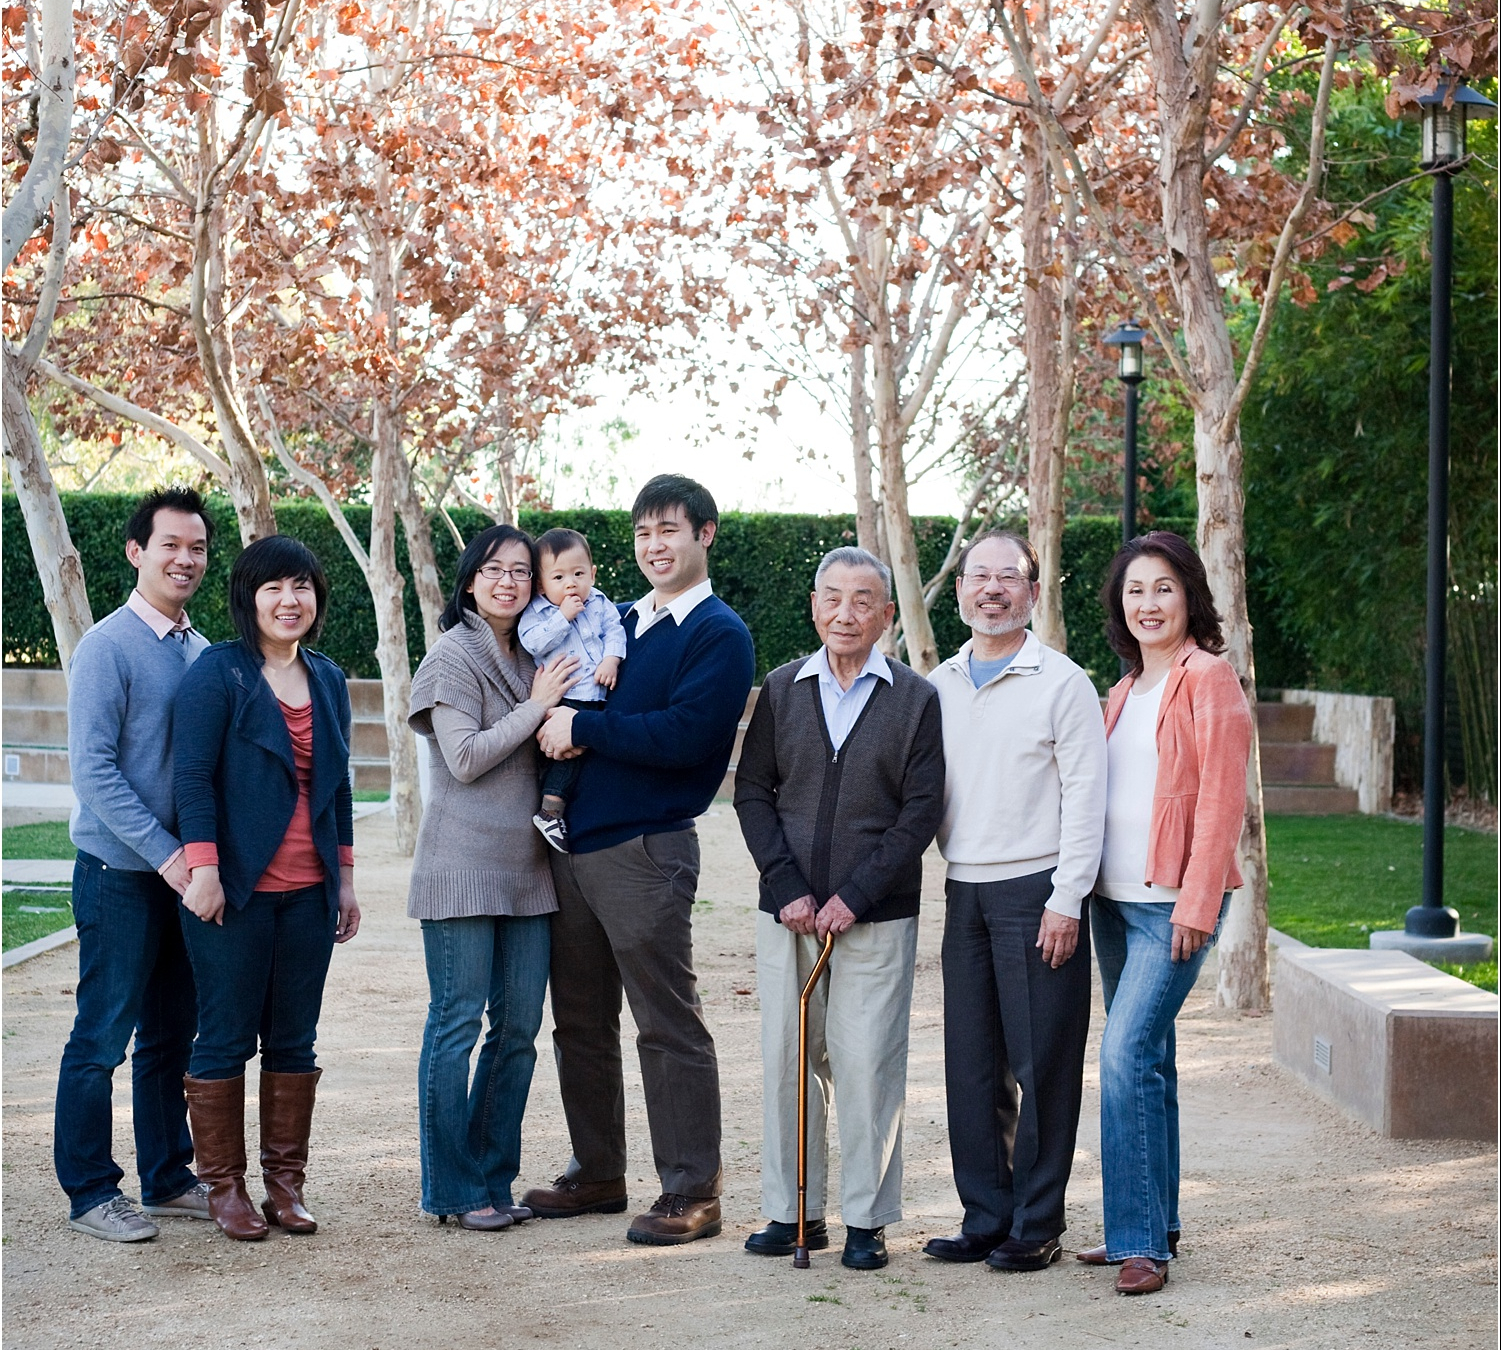 Tips for Posing Large Families and Groups - extended family standing